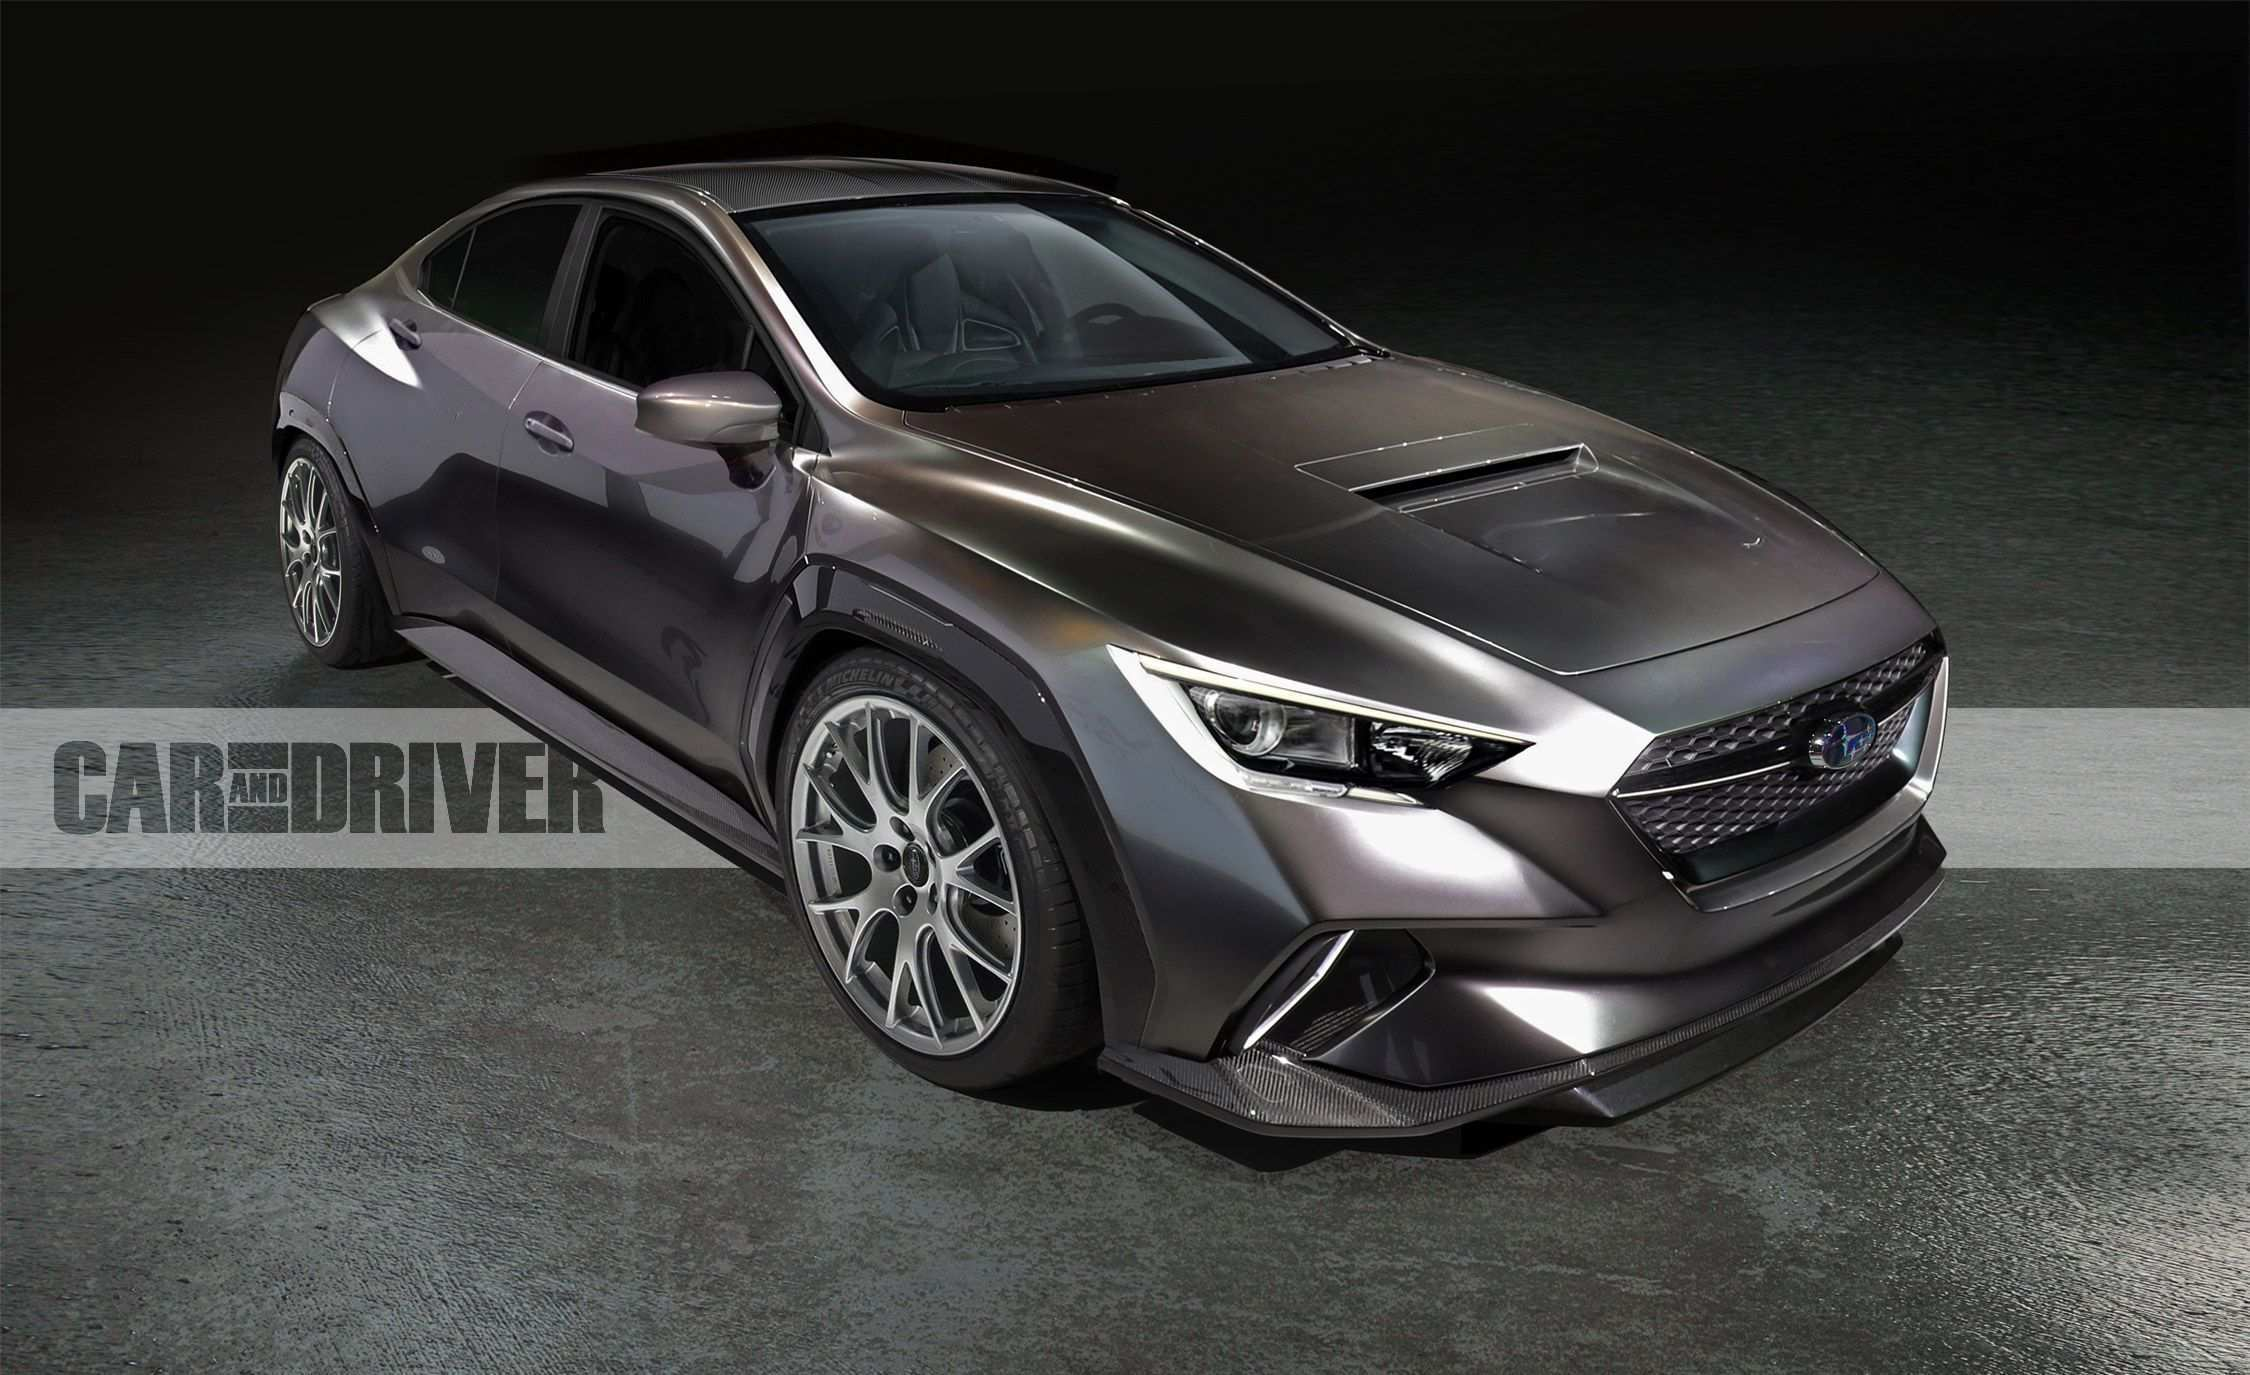 21 New 2020 Subaru Grey Exterior and Interior by 2020 Subaru Grey